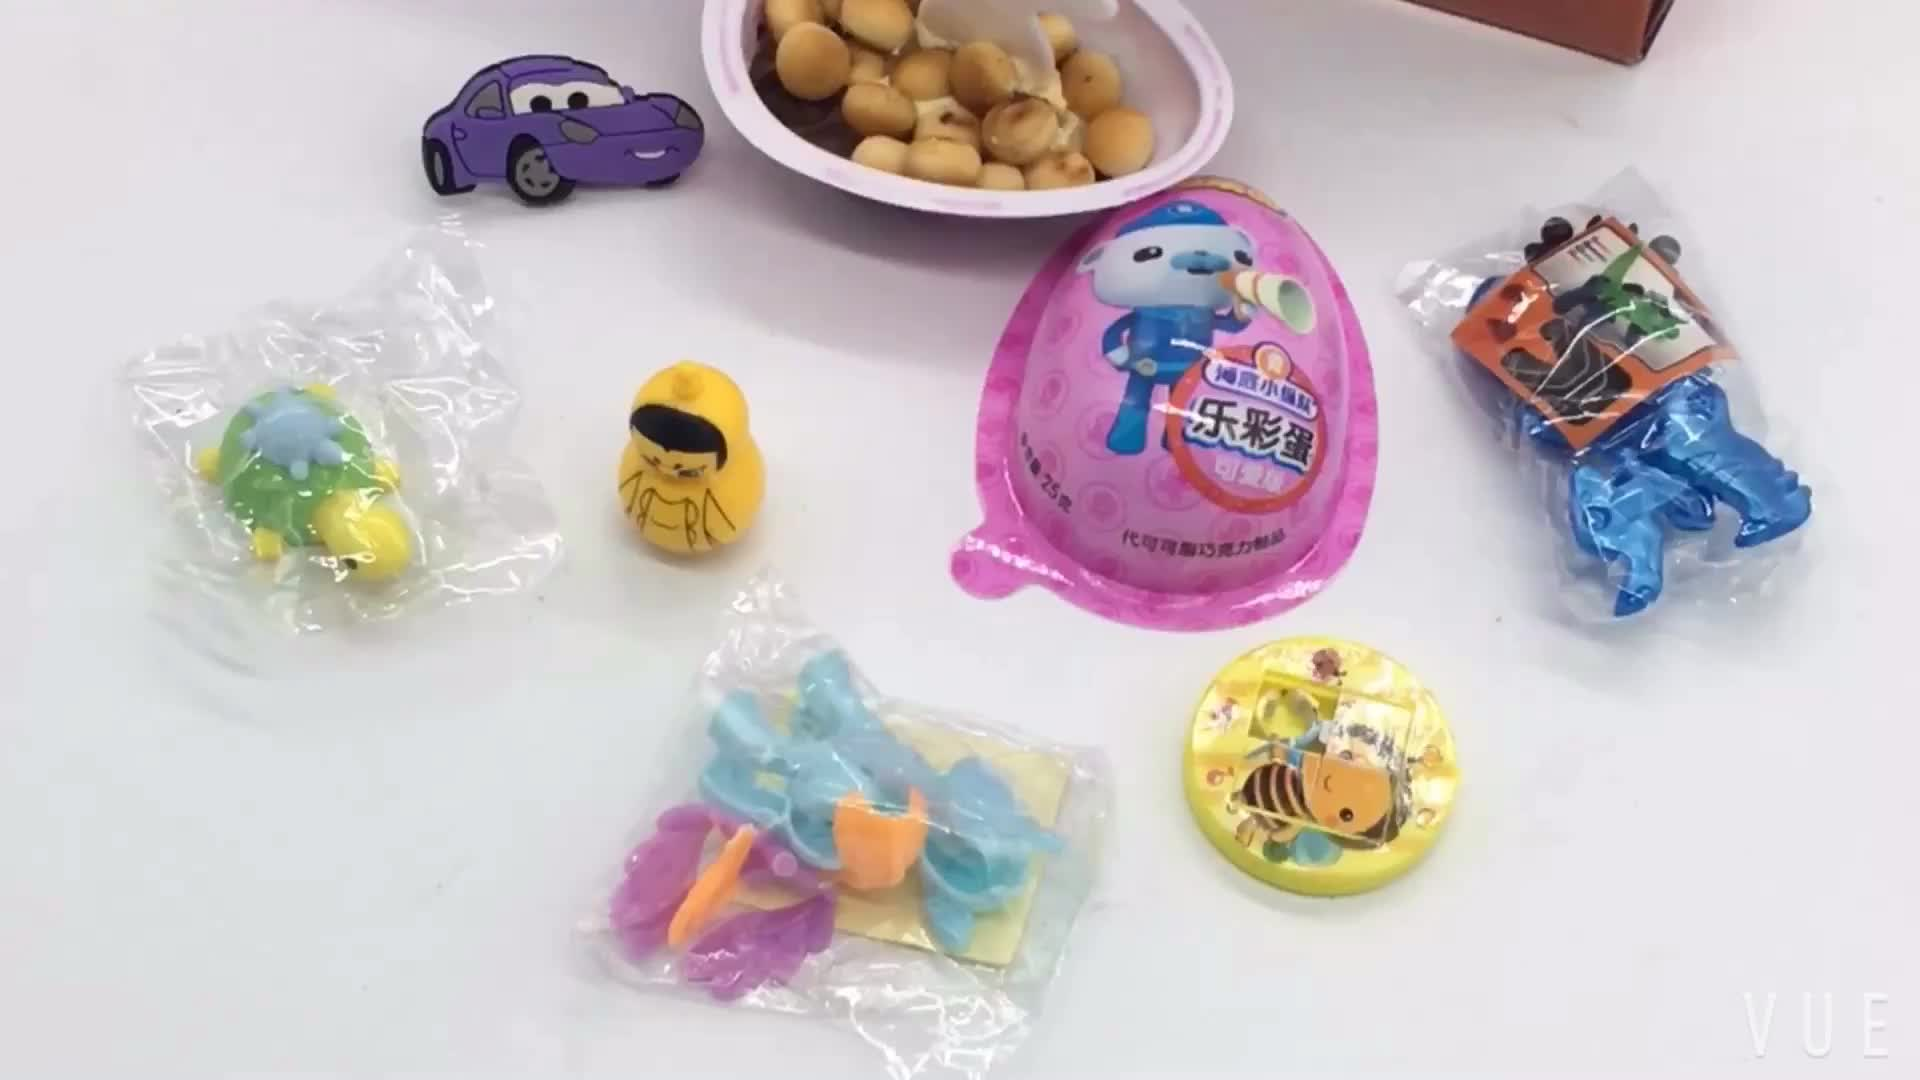 Promotional chocolate egg surprise toys for children